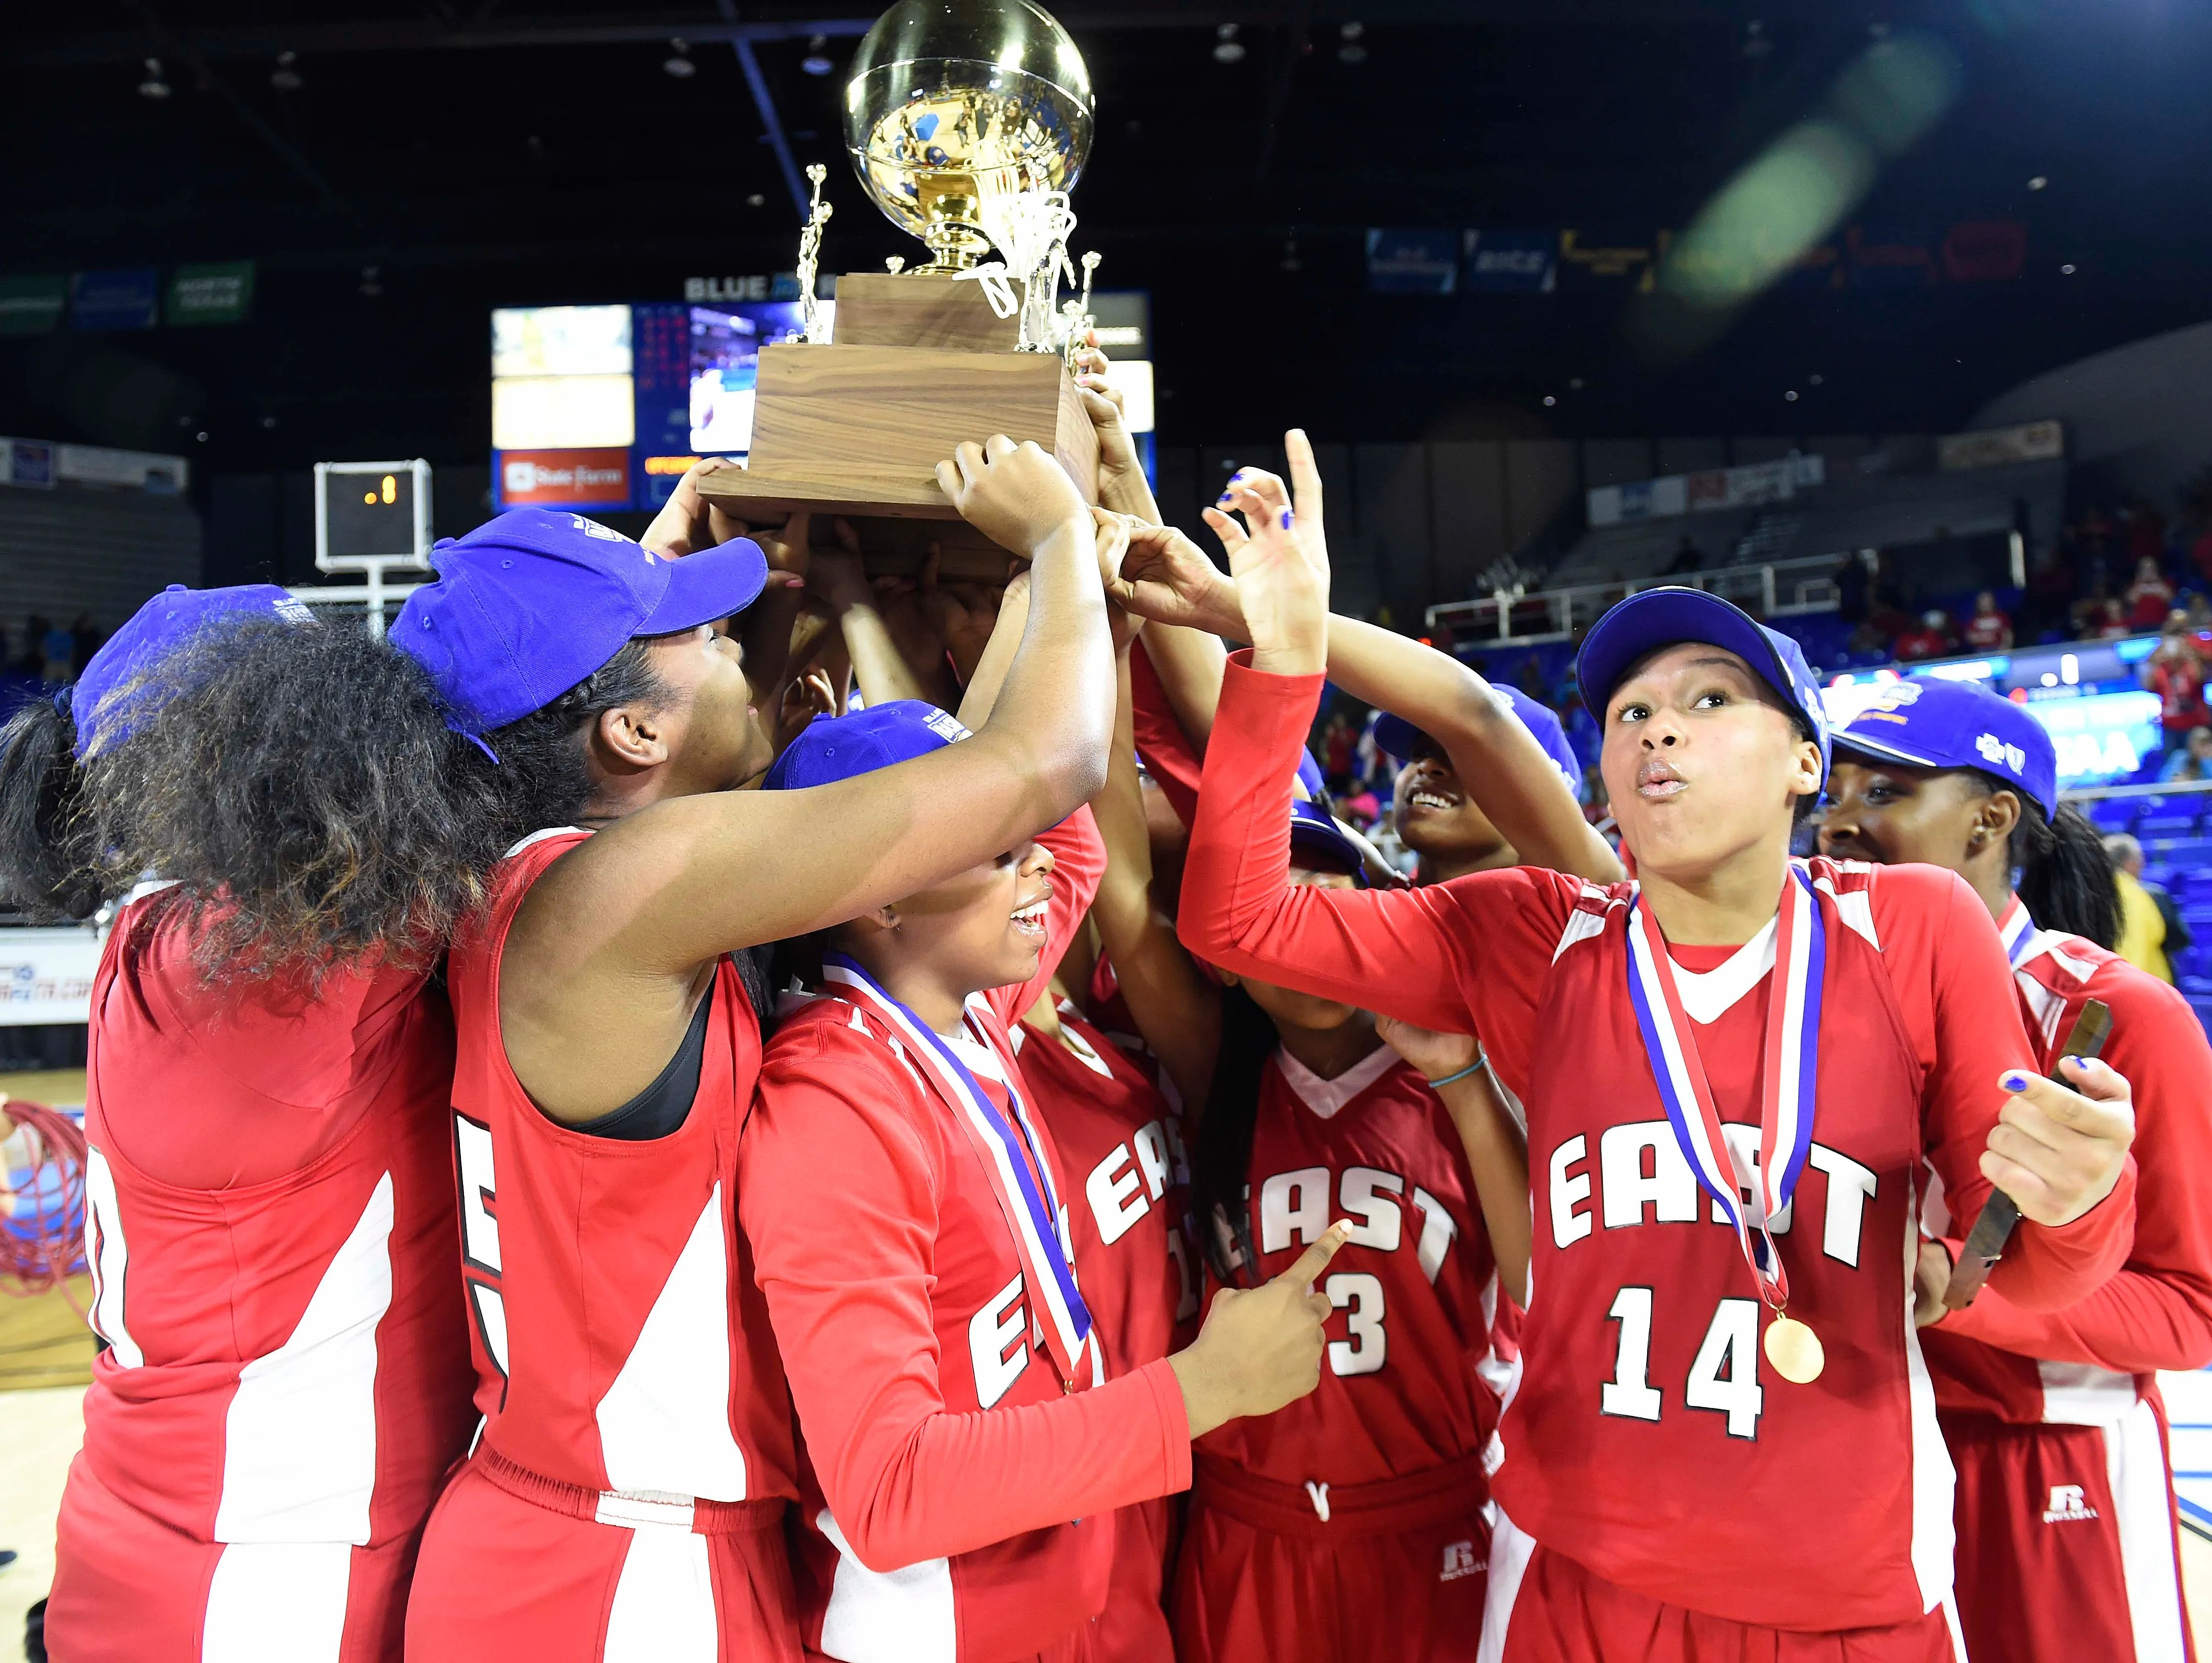 win over Upperman 70-56 in the Division I Class AA Girl's basketball ...